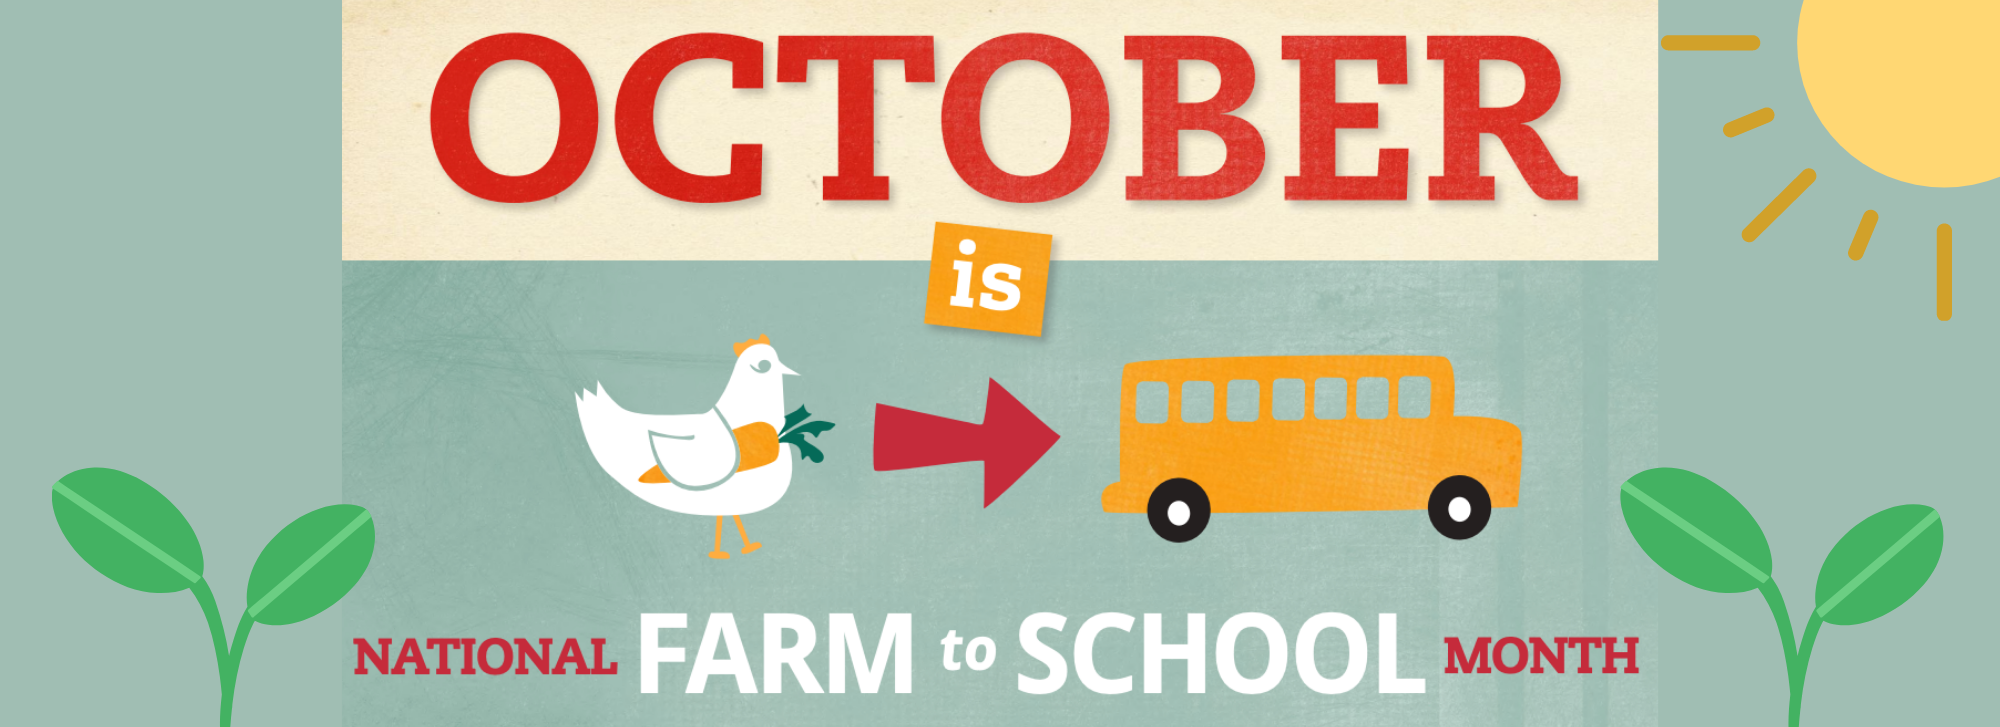 October is National Farm to School Month